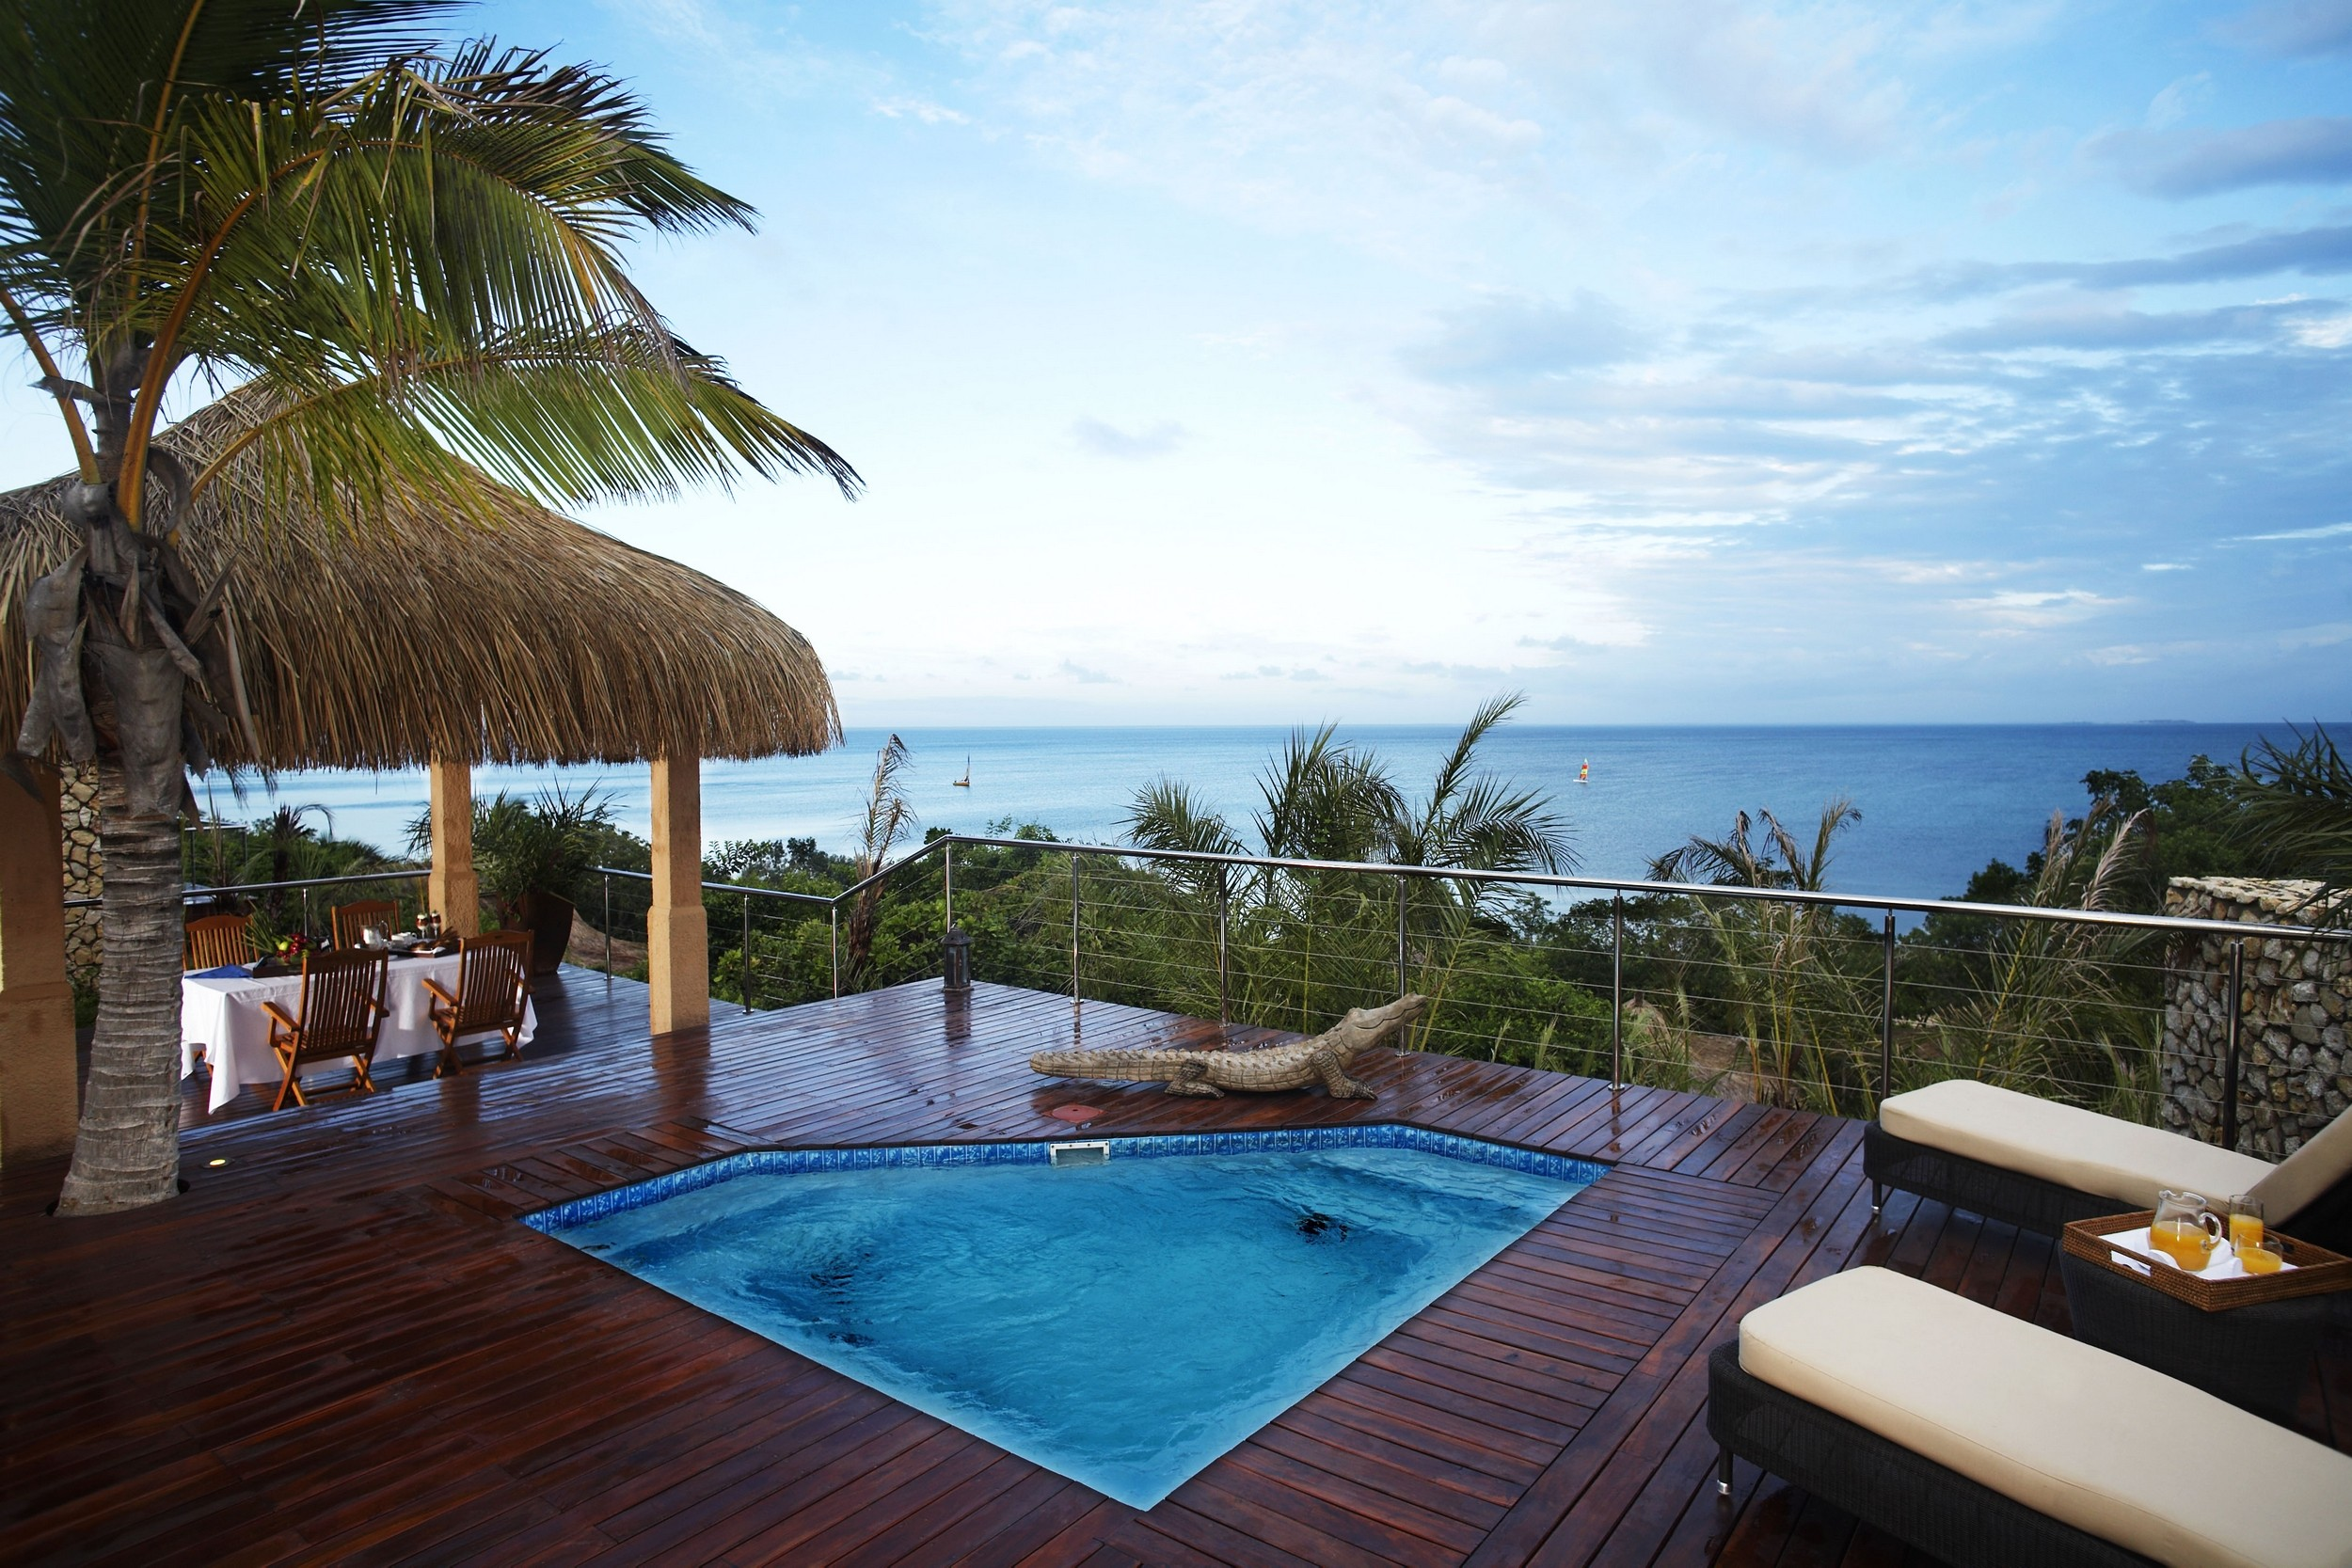 General 2500x1667 photography nature landscape resort luxury palm trees sea tropical Africa